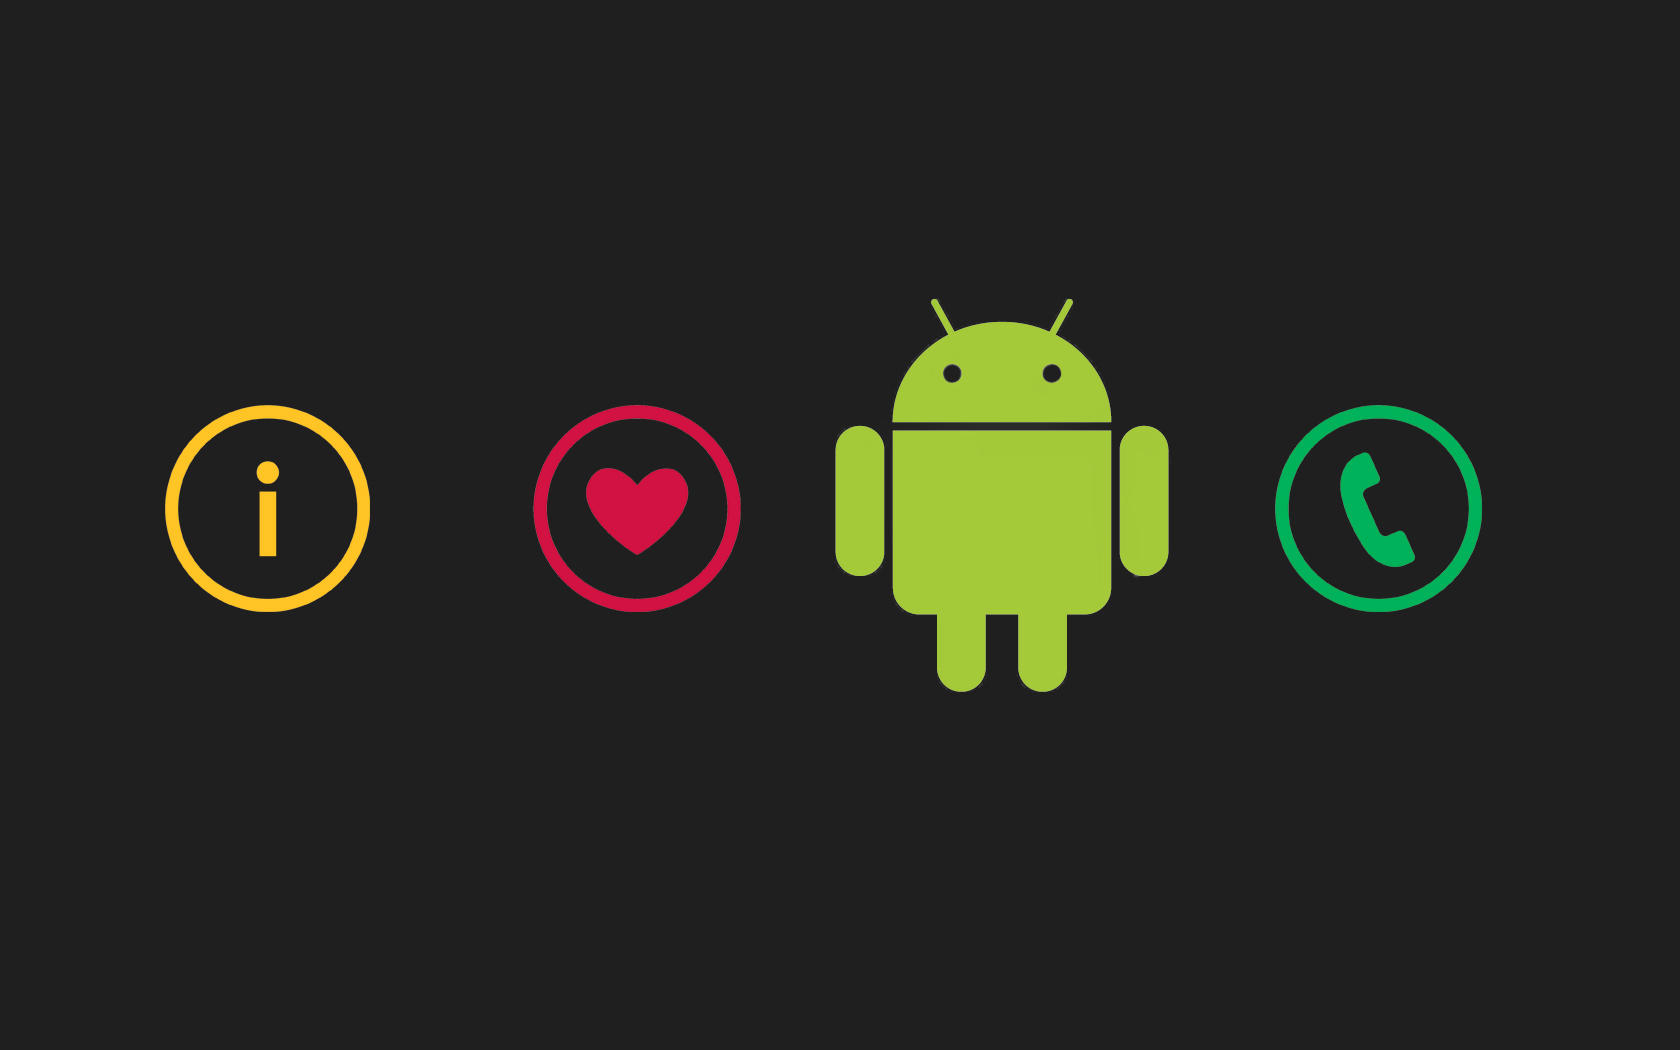 Android I Love Wallpaper Free Download - Android Logo Wallpaper For Mobile - HD Wallpaper